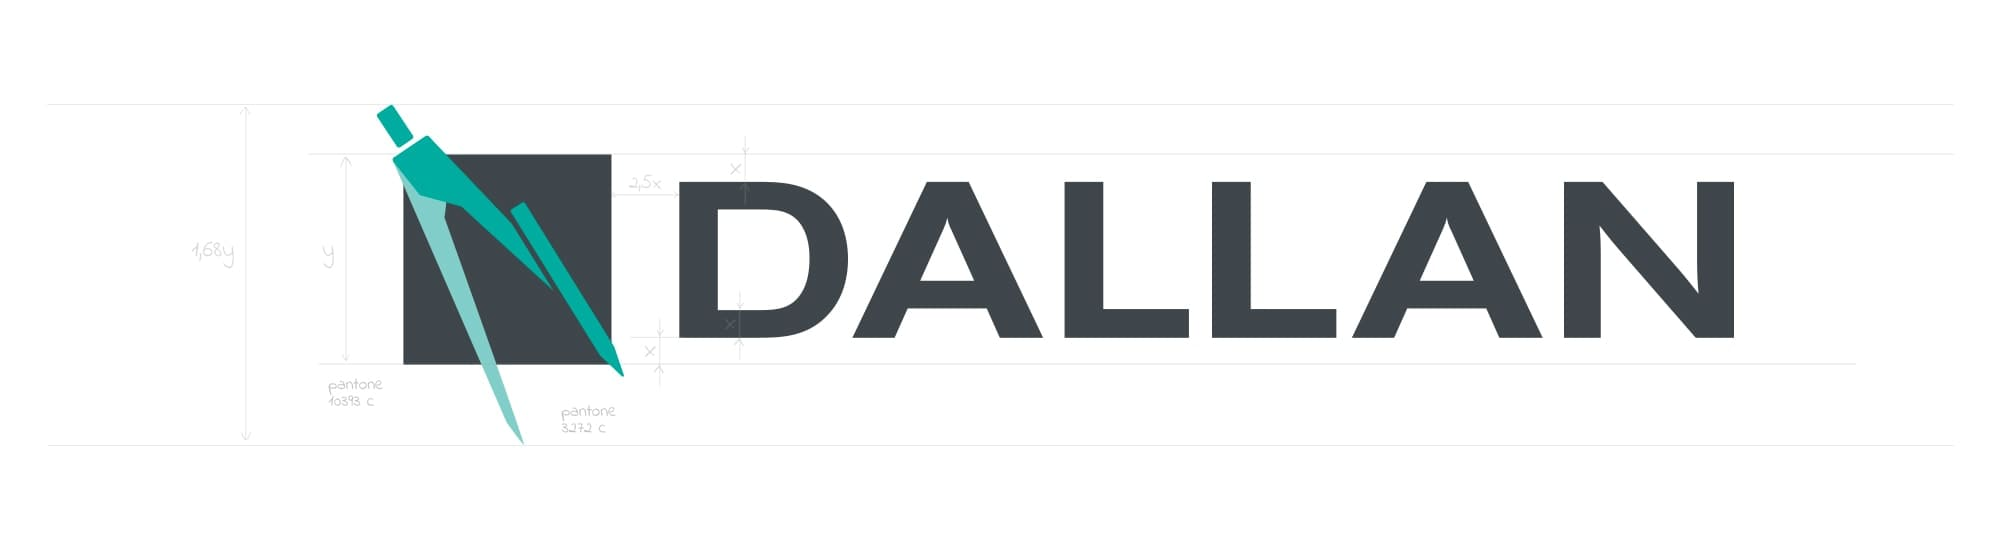 new dallan logo project